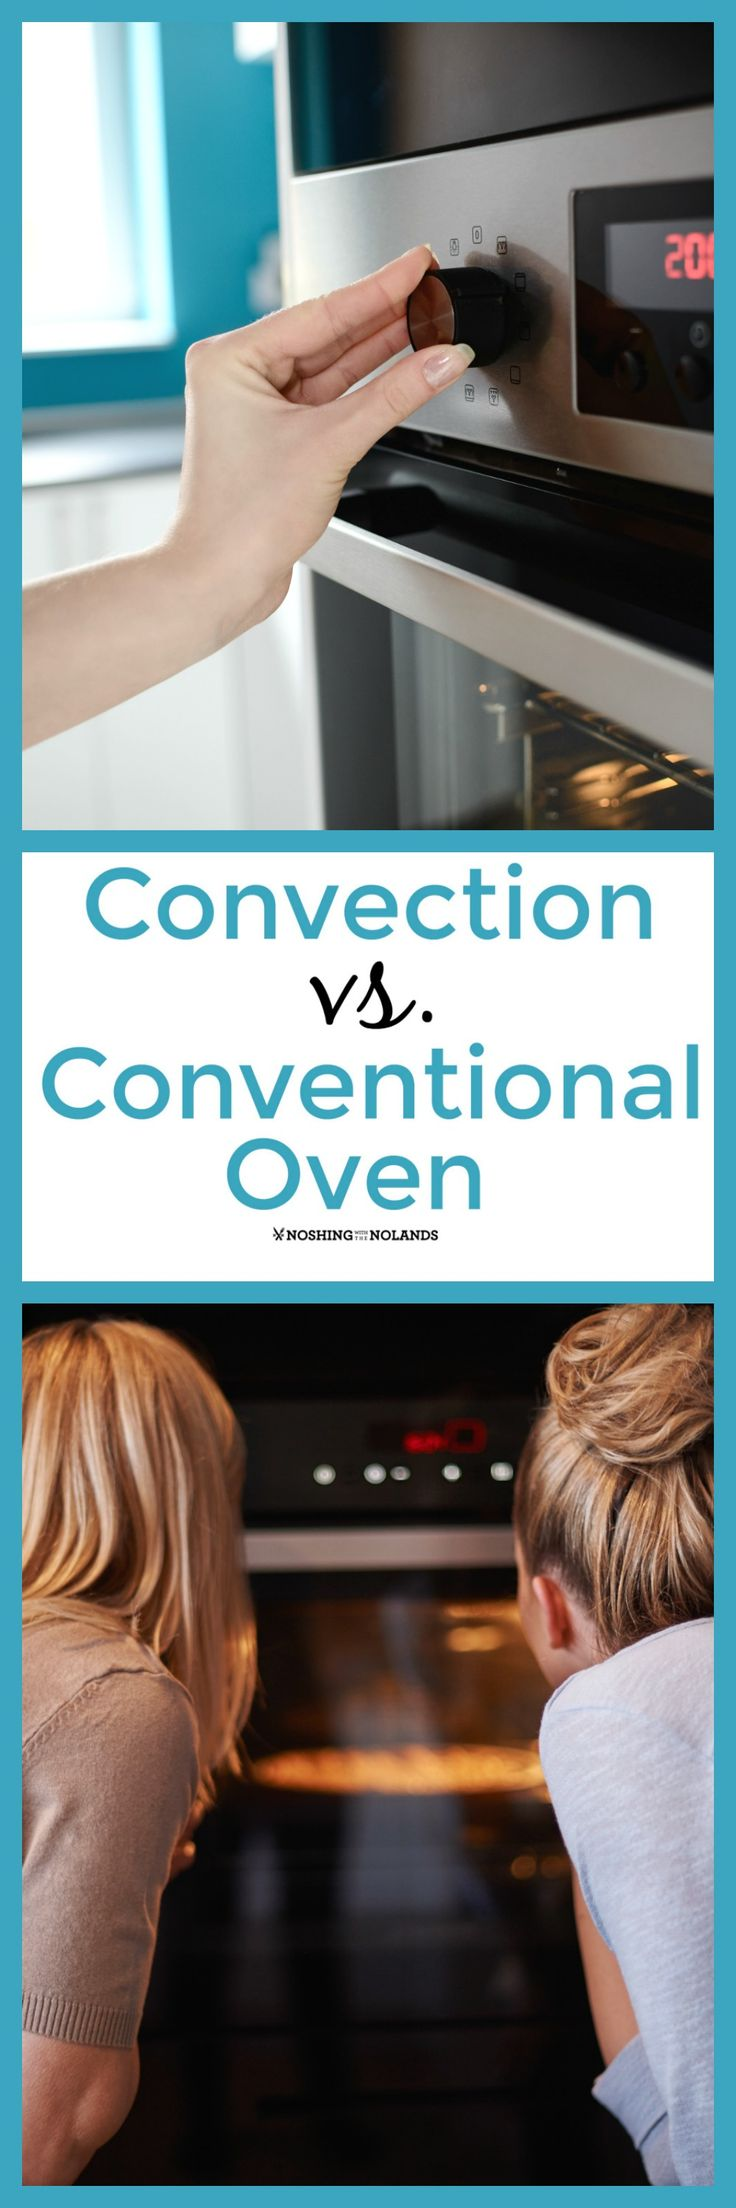 Convection Vs Conventional Oven By Noshing With The